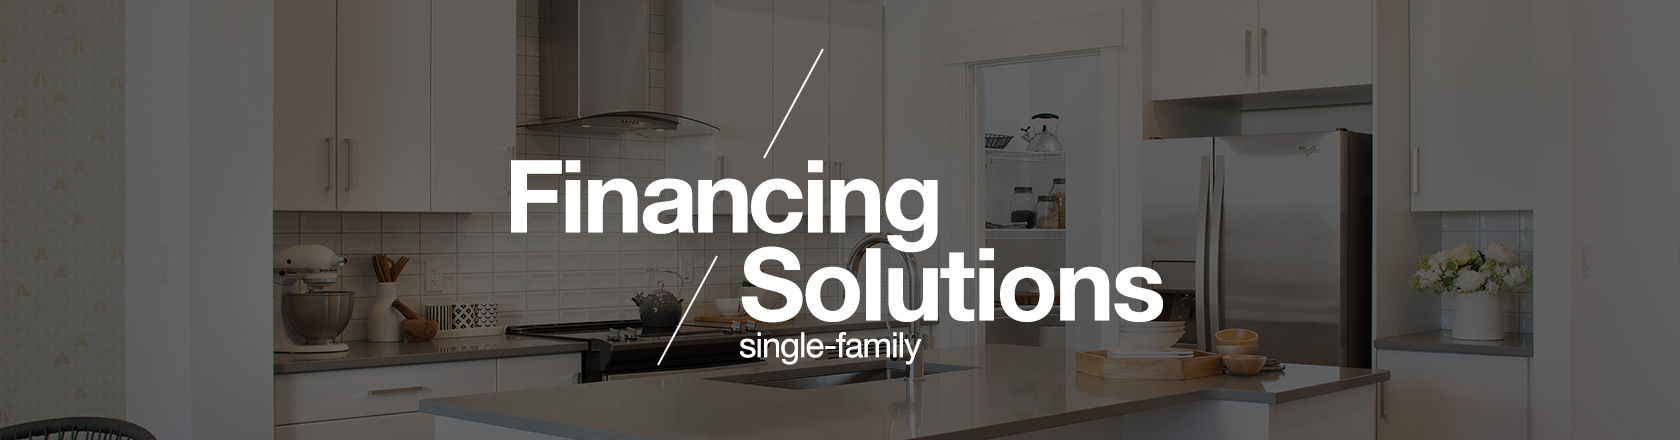 Single-Family Financing Solutions banner